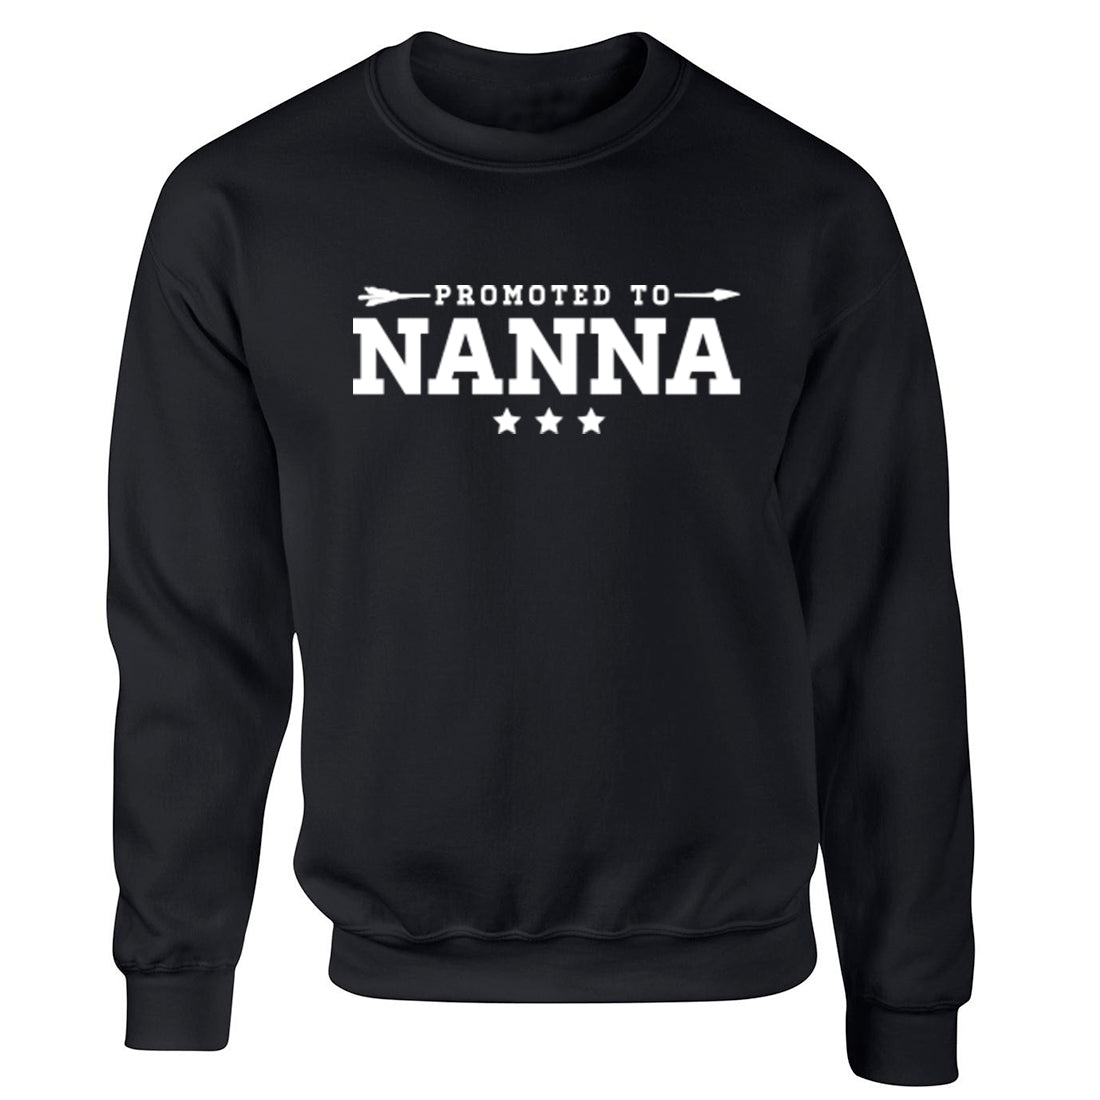 Promoted To Nanna Unisex Jumper K2079 - Illustrated Identity Ltd.